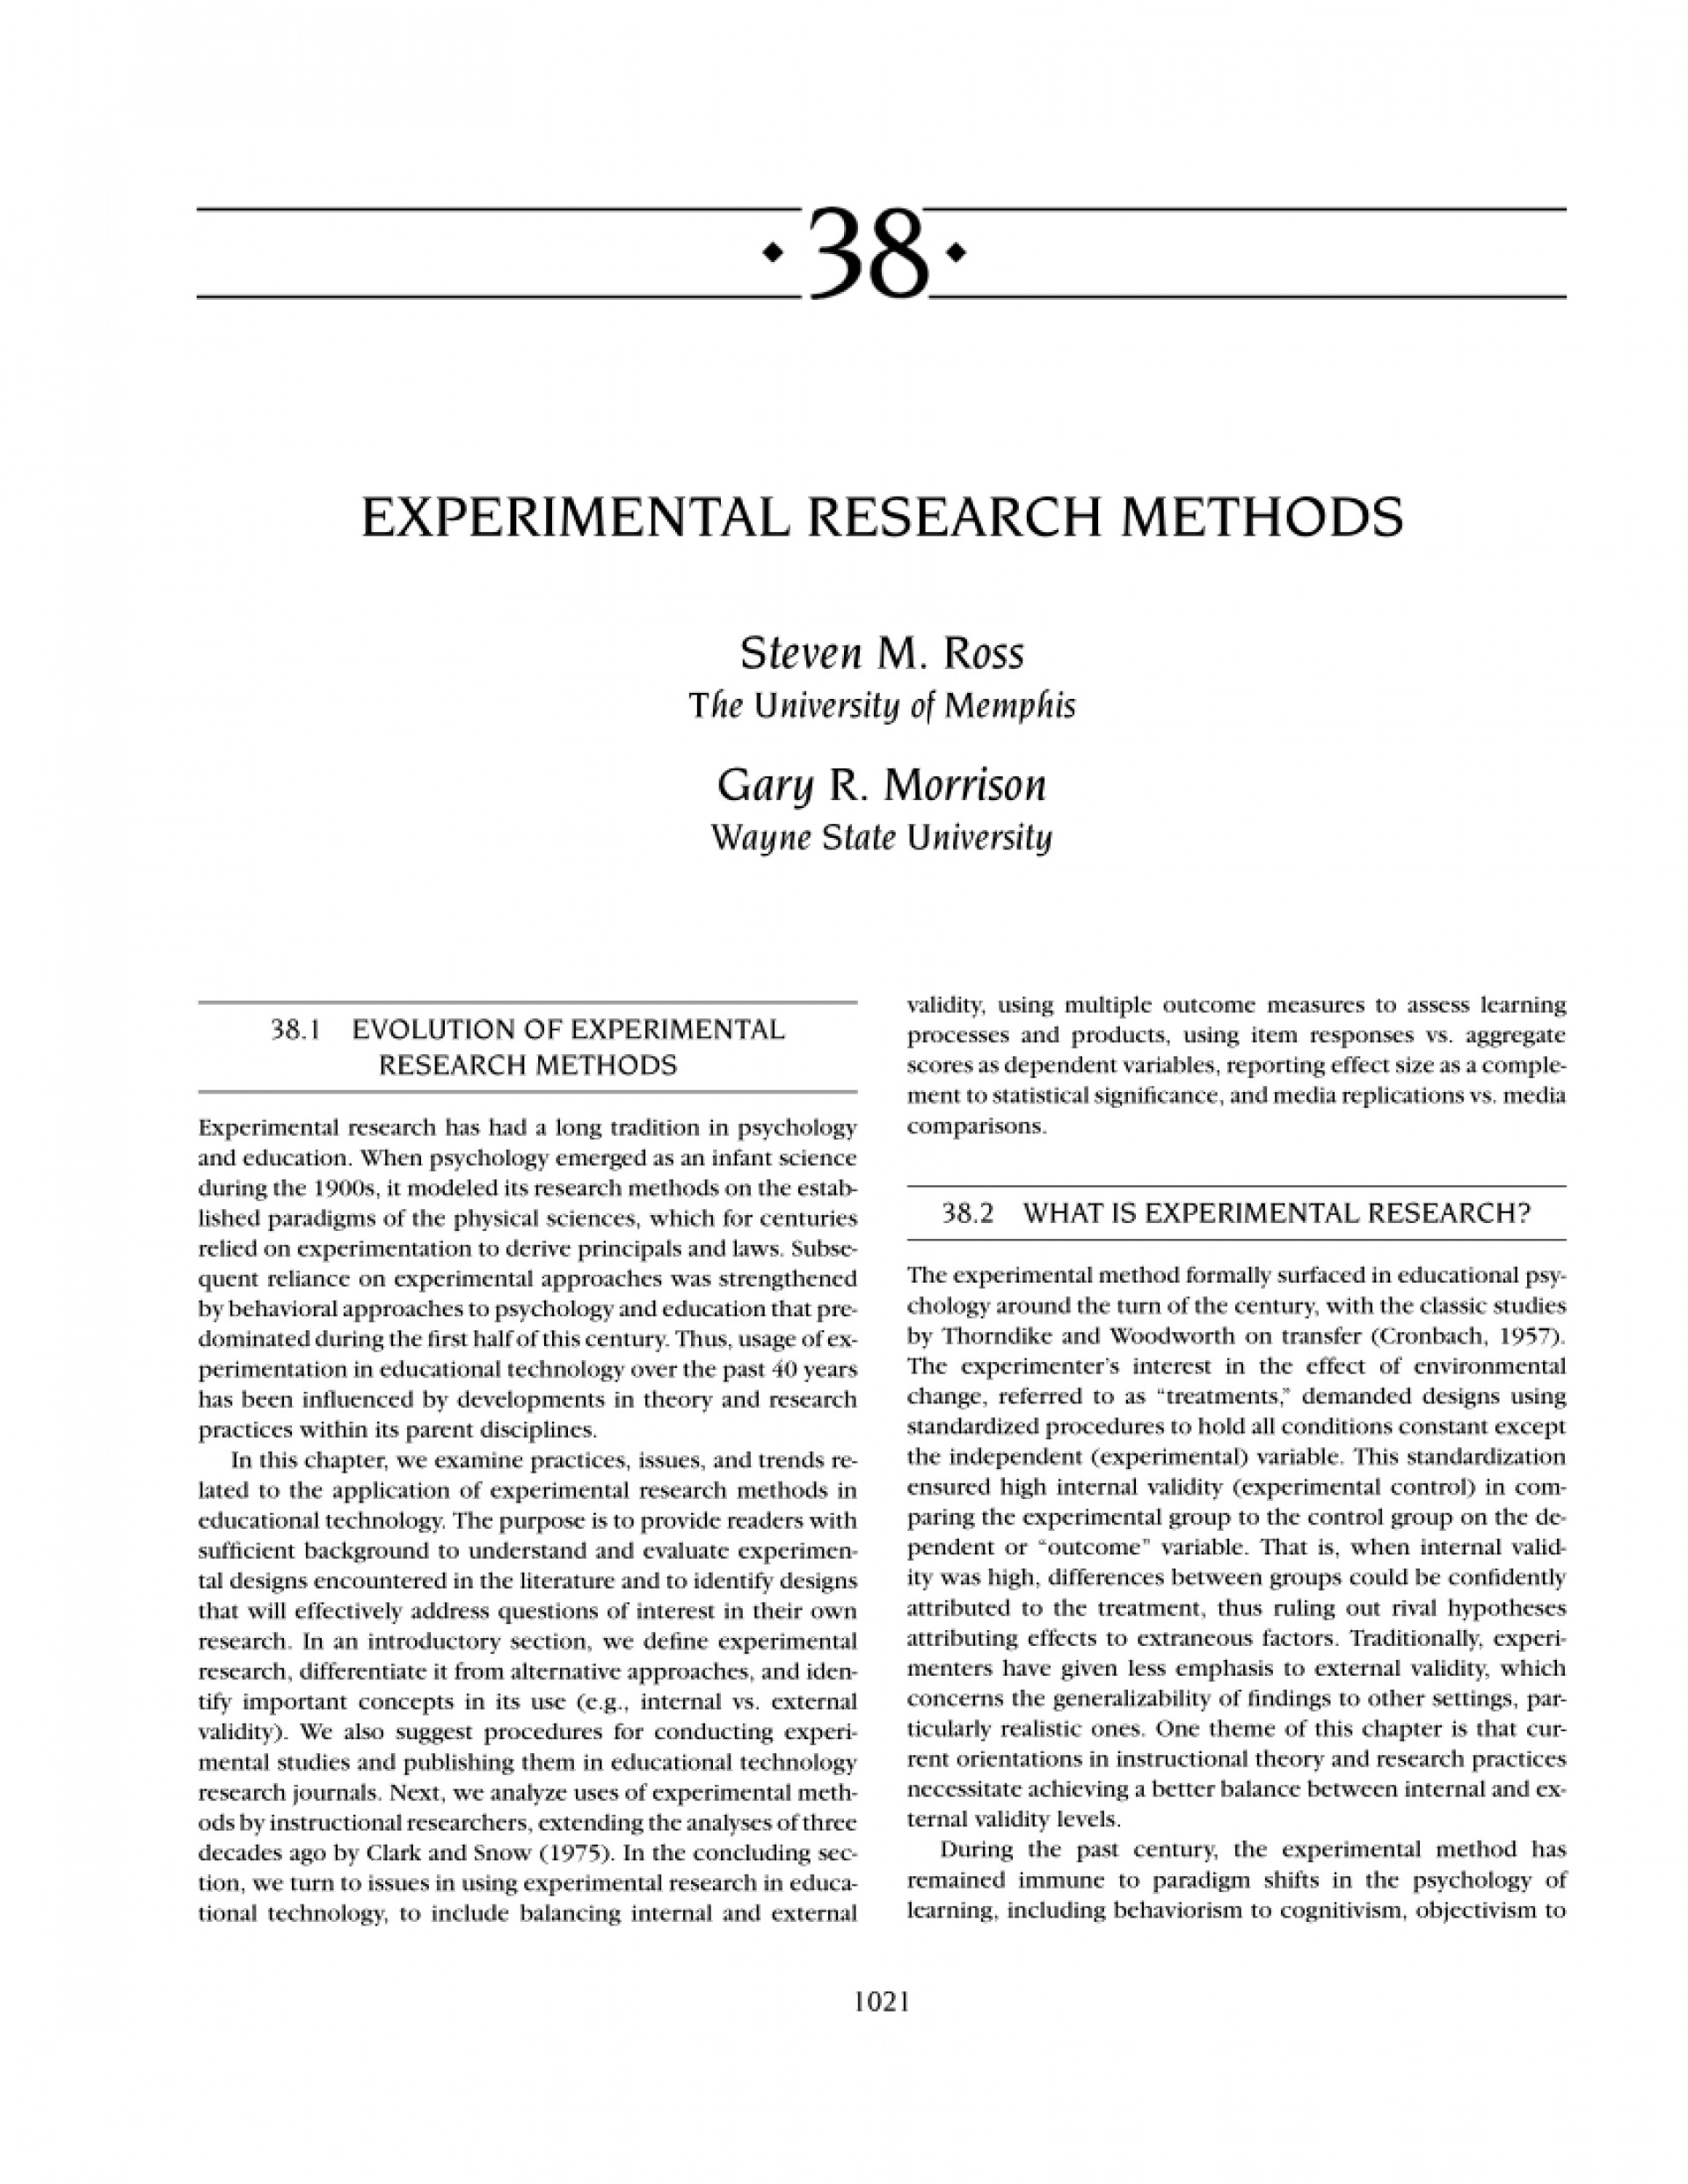 005 Experimental Research Paper Sample Pdf Philippines Top 1920